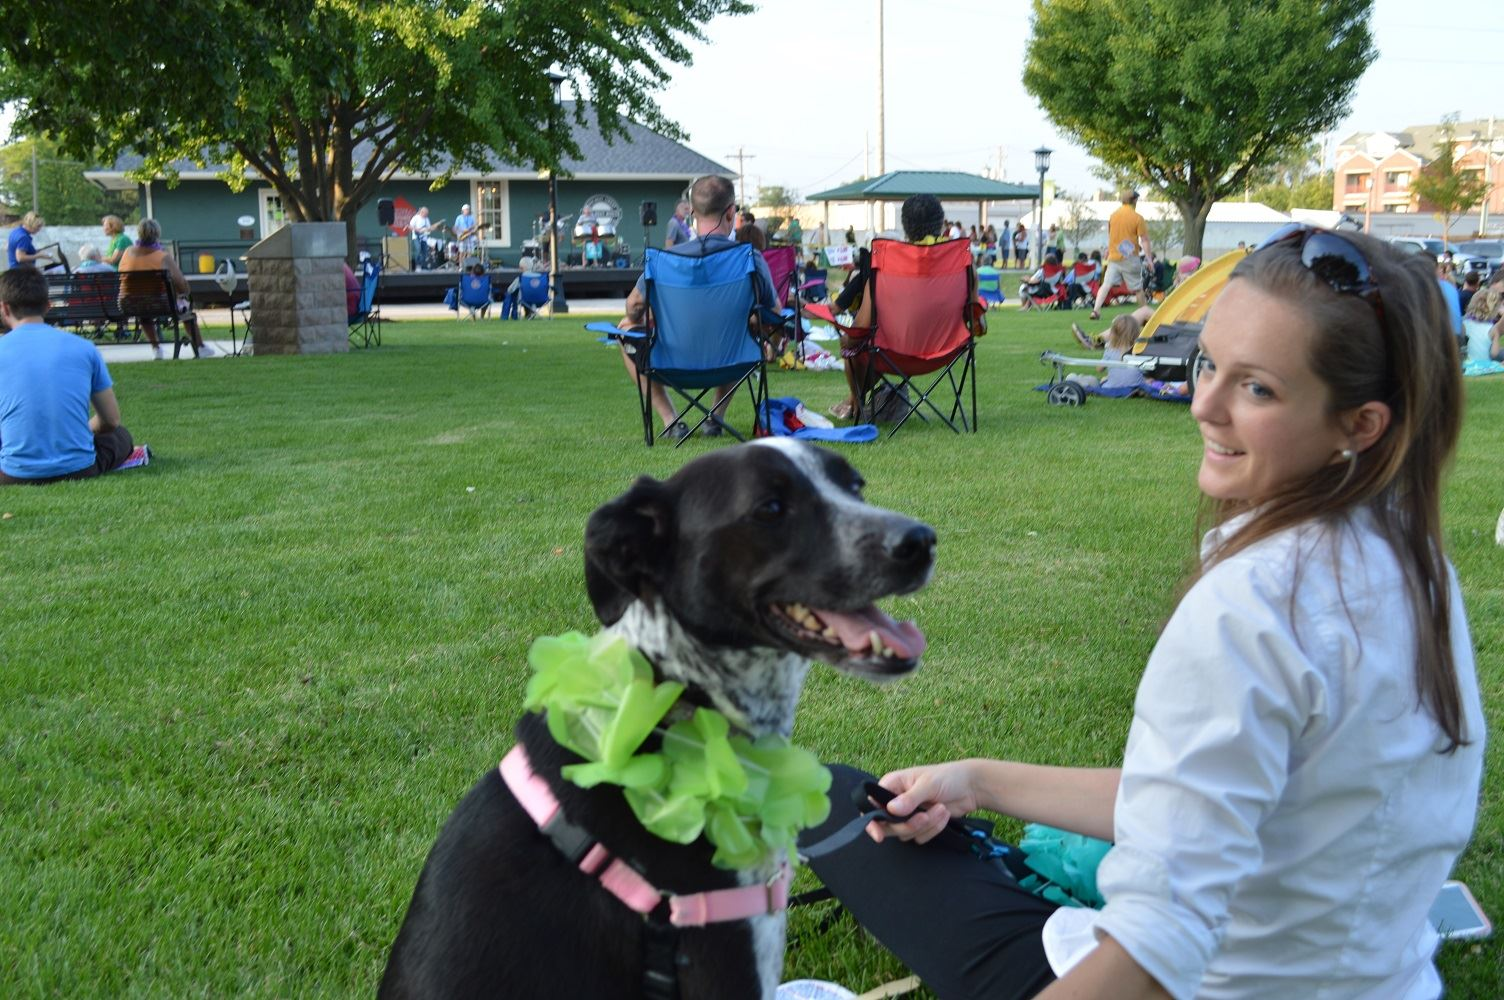 A dog sits with a flower lei at a Mr. Meyers concert at Cortesi Veterans Memorial Park on Aug. 4, 2016.